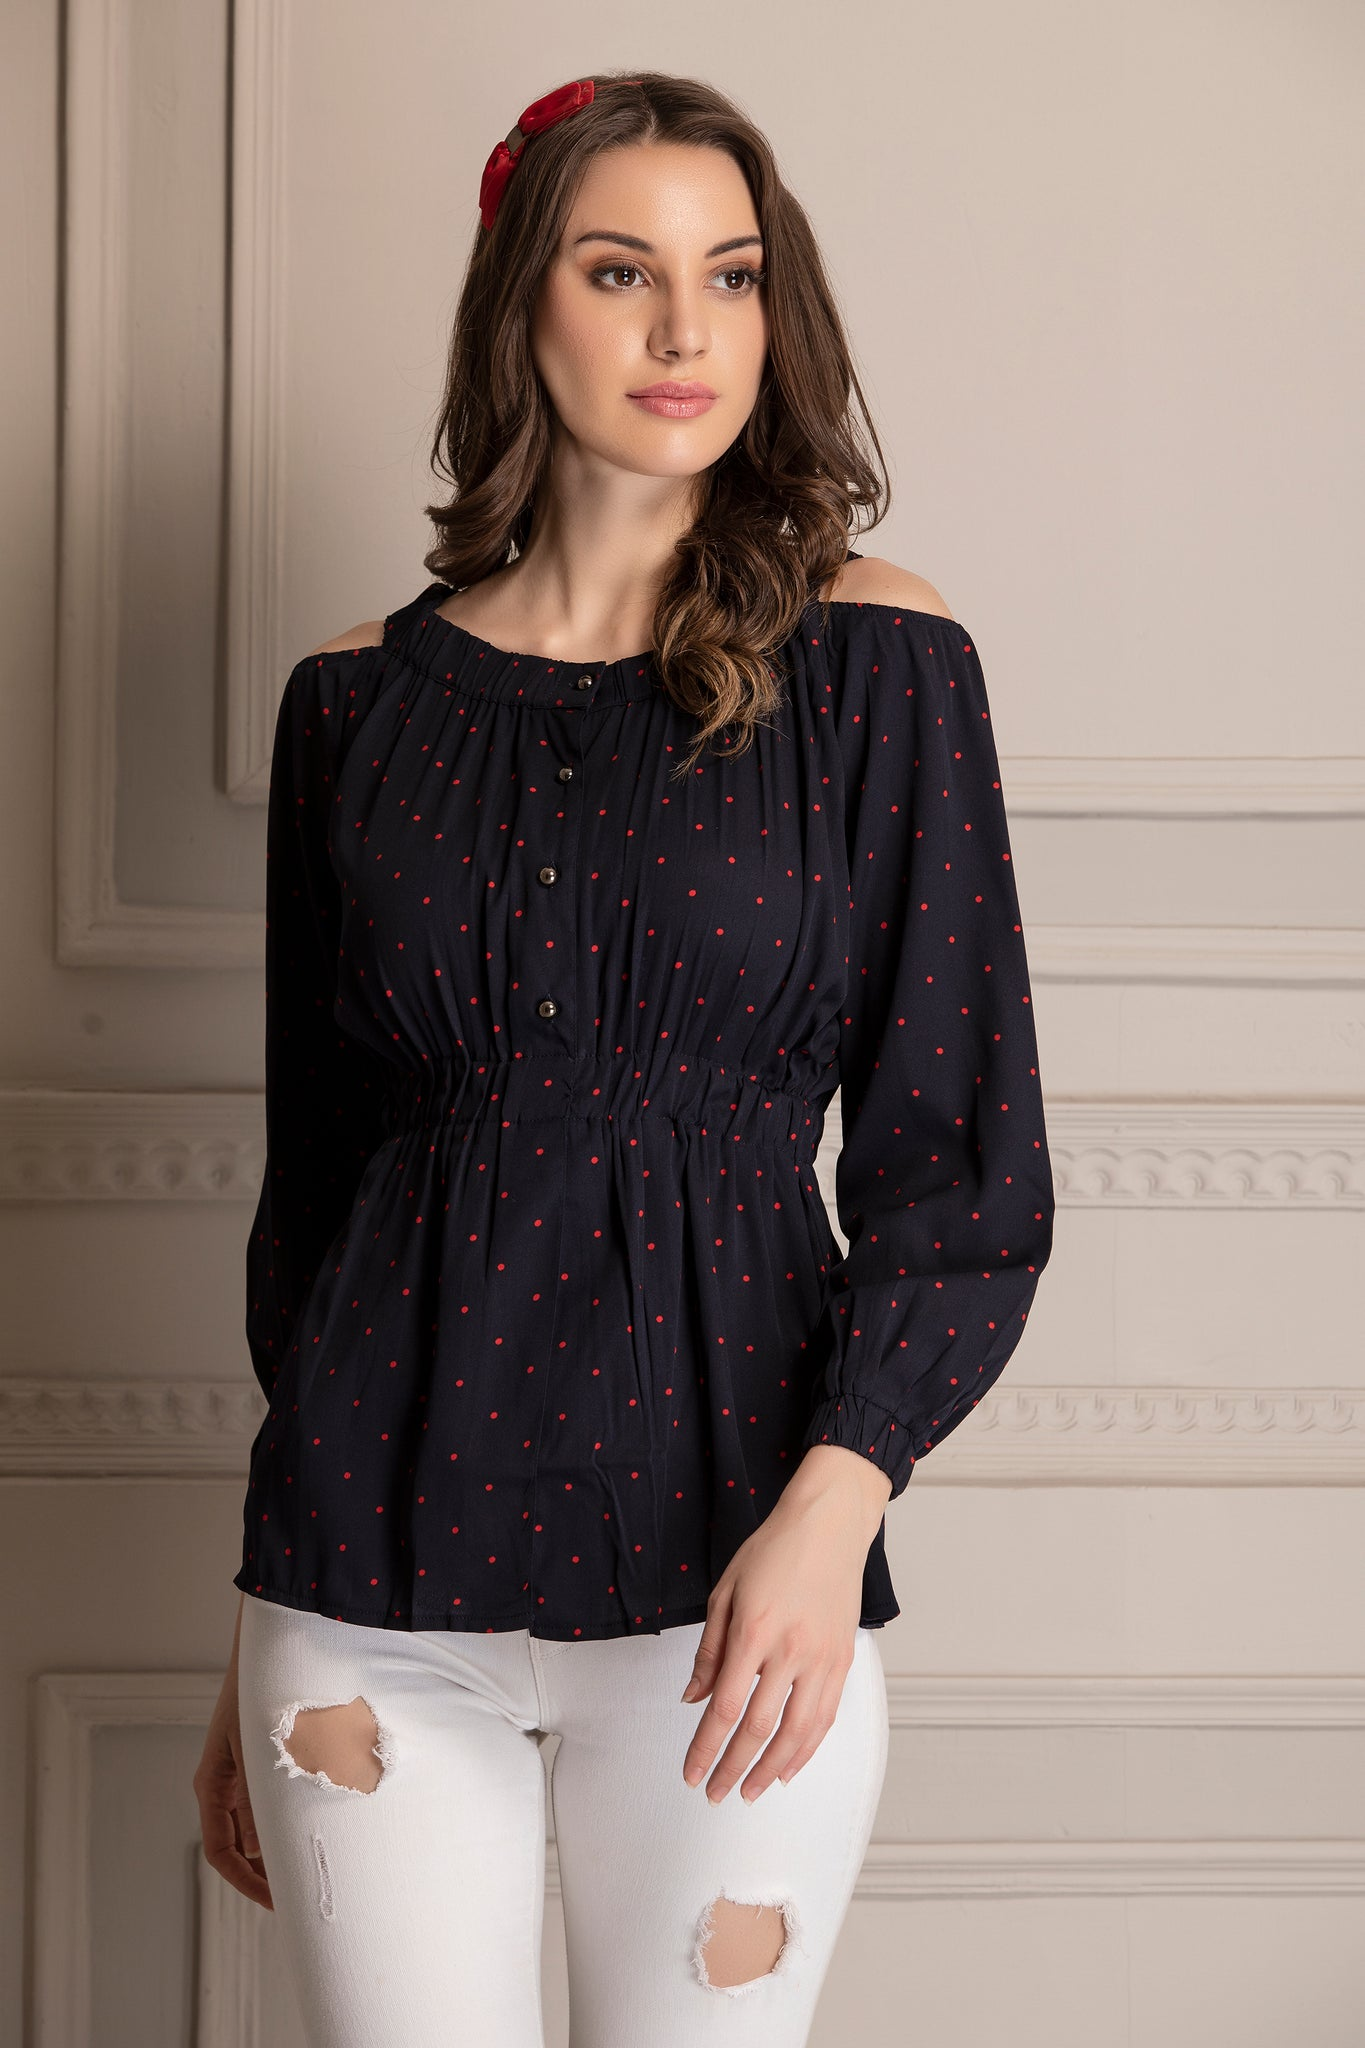 Navy and Red Polka Dot Top